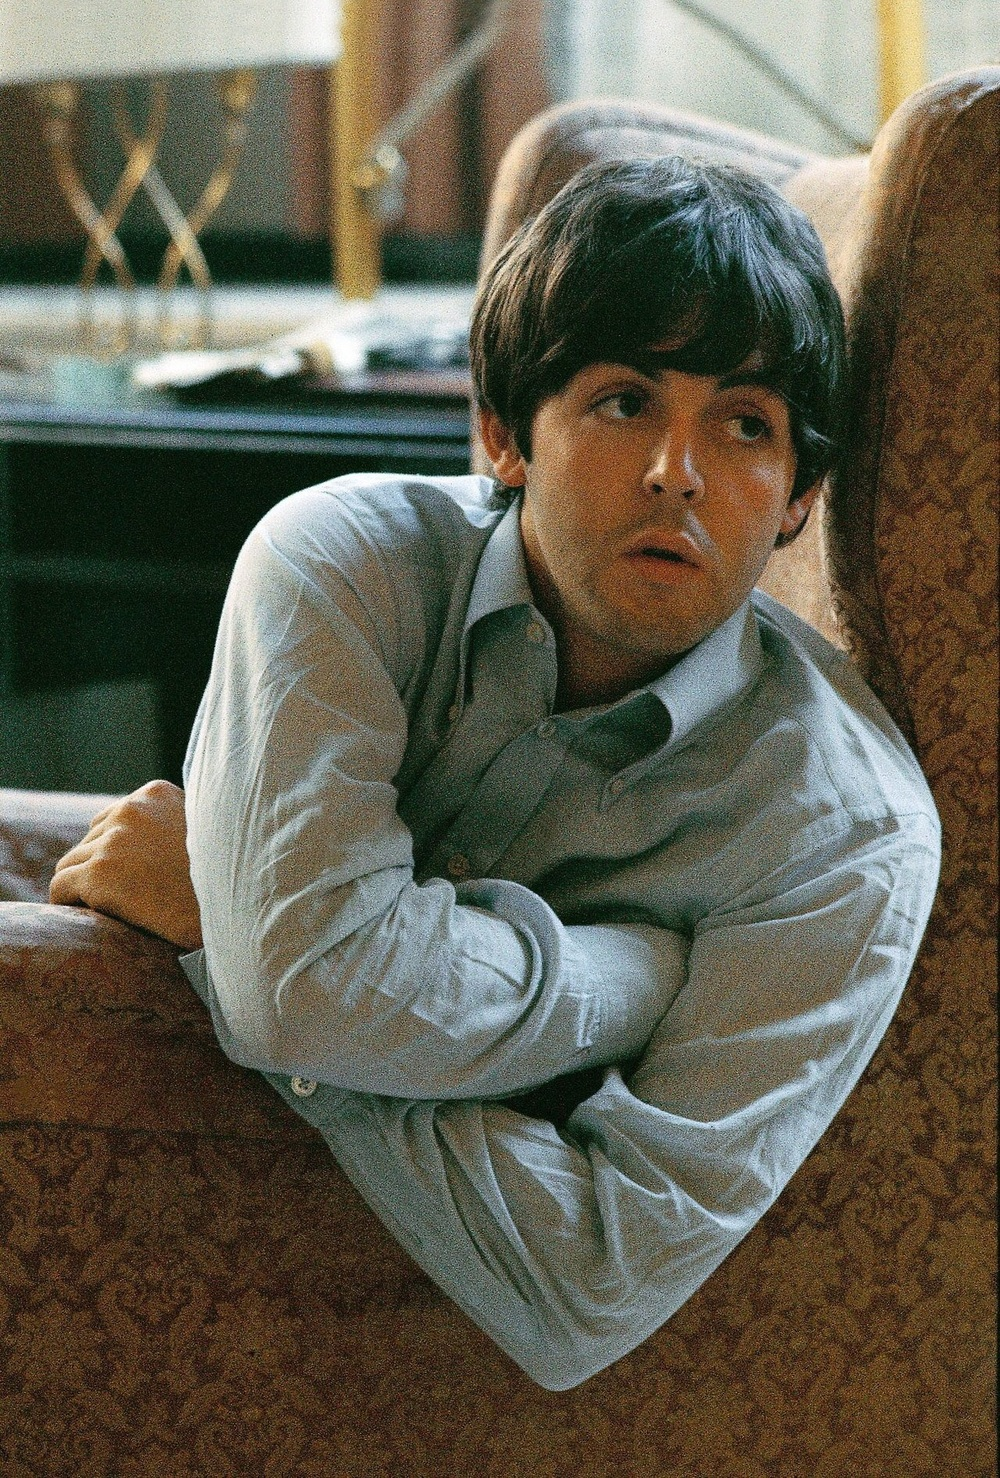 Paul McCartney at the George V hotel in Paris, June 20th 1965.